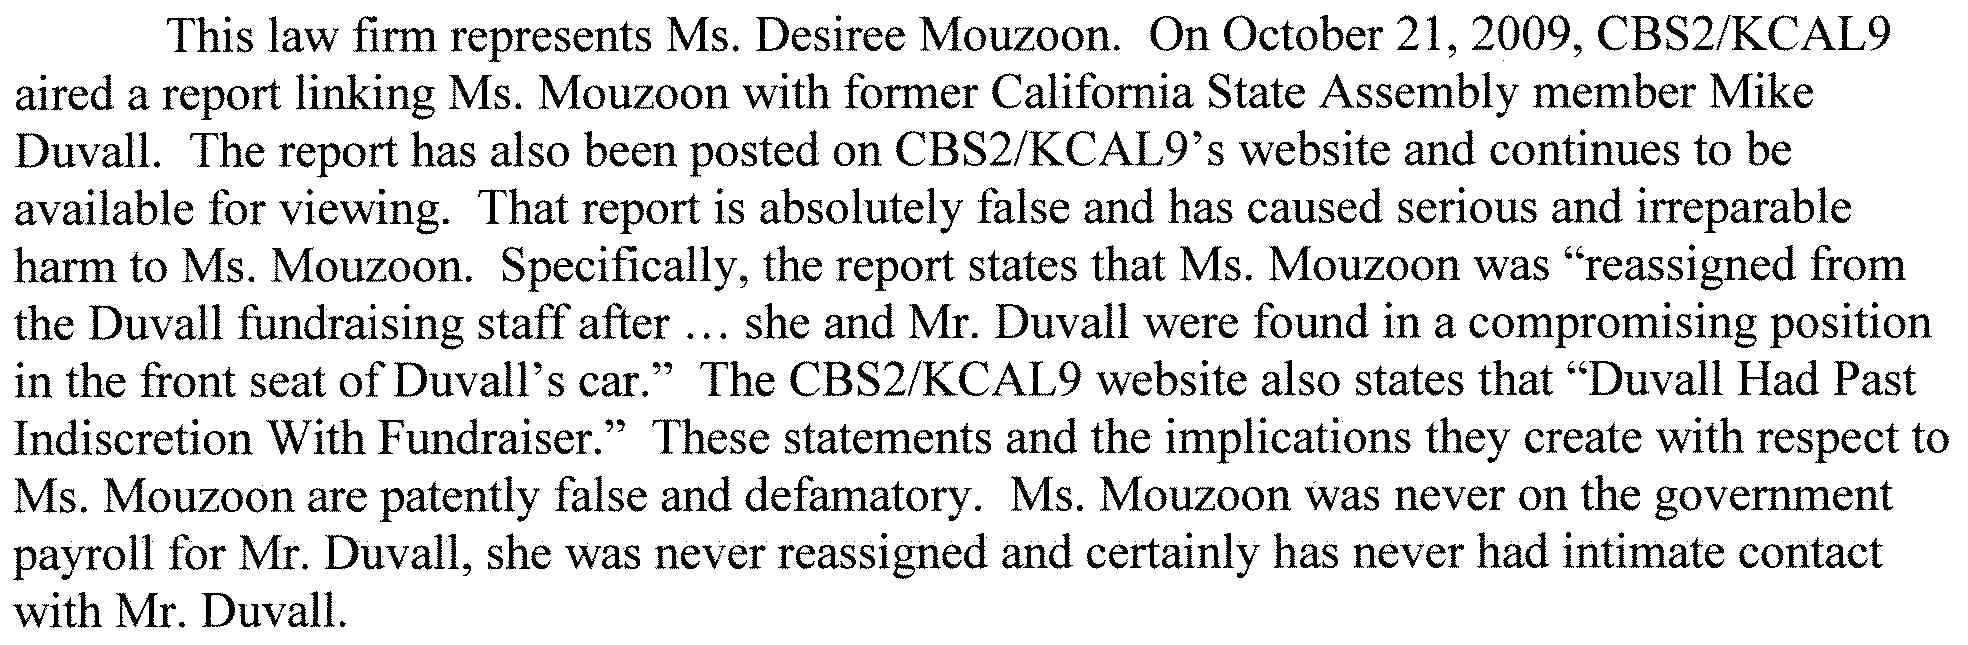 Are you wondering where our post about Mike Duvall, Desiree Mouzoon and Dick Ackerman went?  We received, via email, a letter from an attorney named Corbett Williams, and signed by another […]